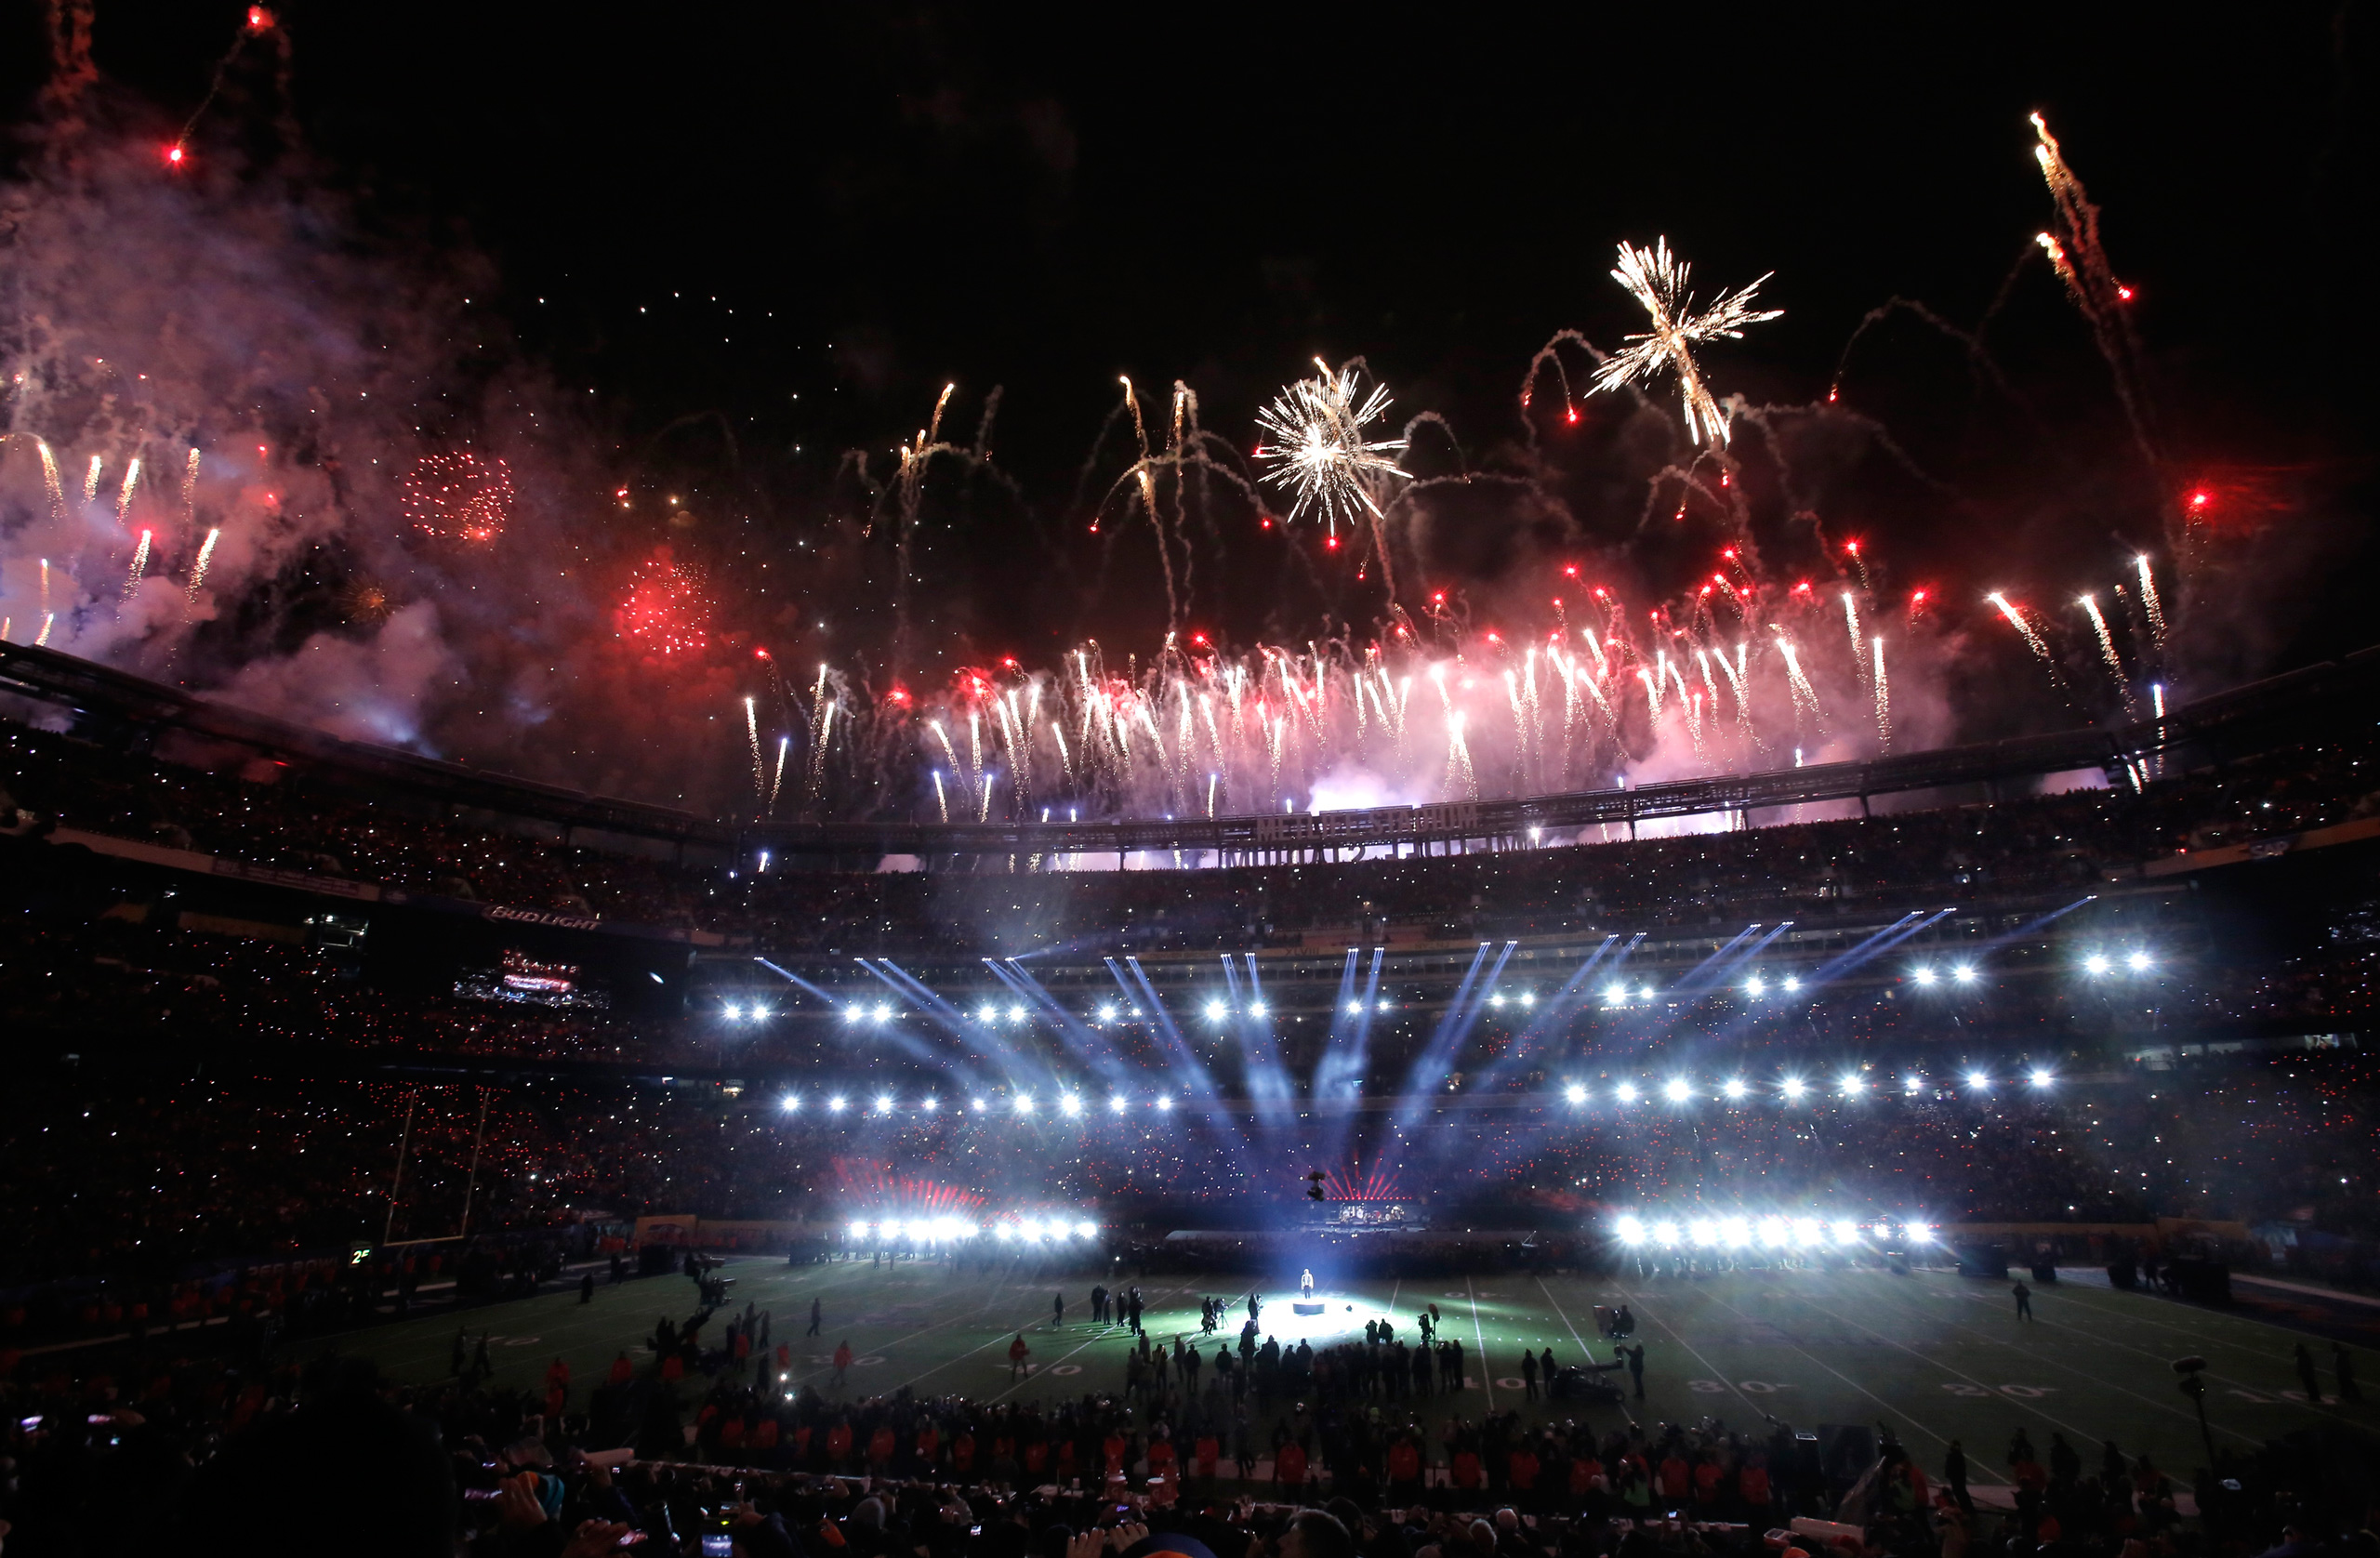 Halftime fireworks erupt during the half-time show of the NFL Super Bowl XLVIII football game between the Denver Broncos and the Seattle Seahawks in East Rutherford, N.J., on Feb. 2, 2014.